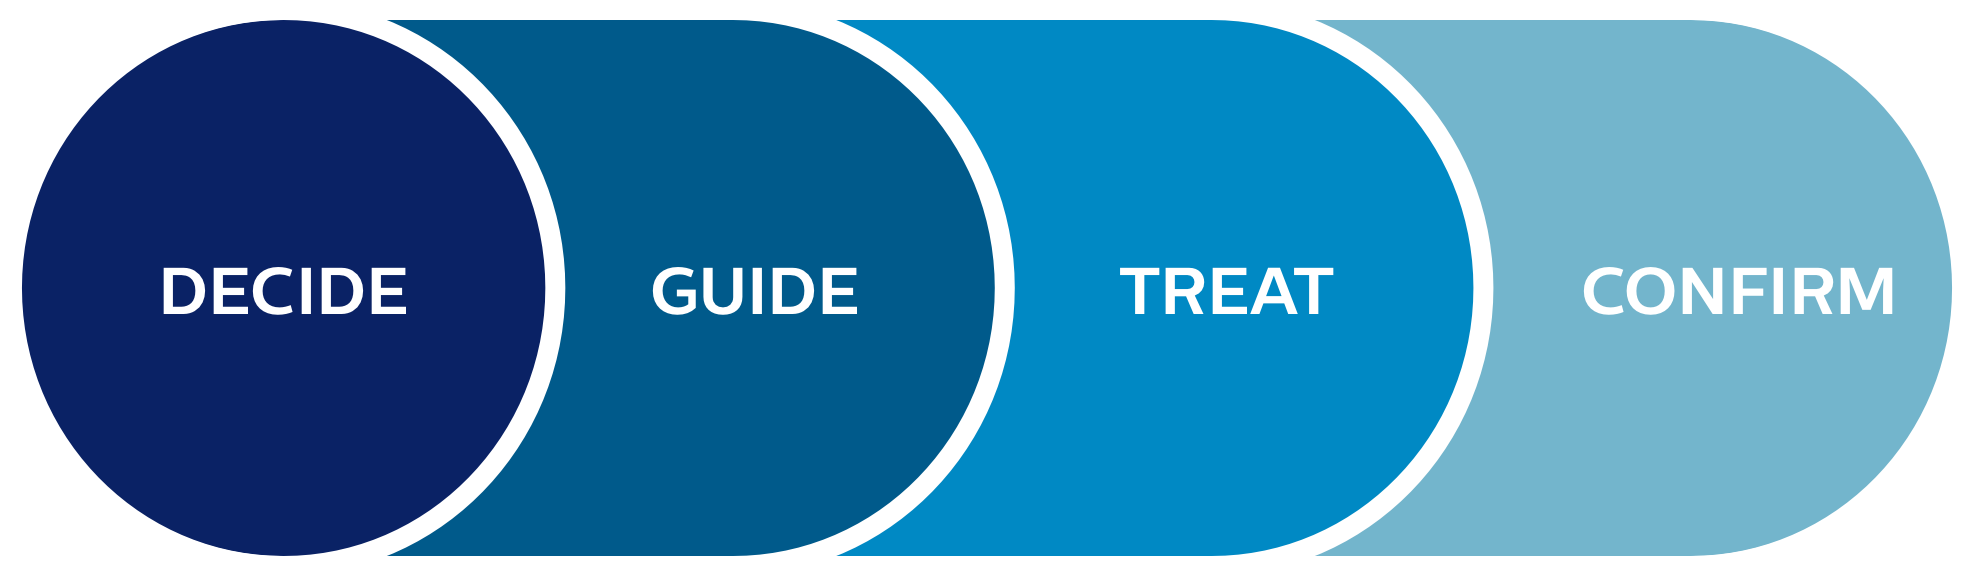 Decide guide treat confirm graphic